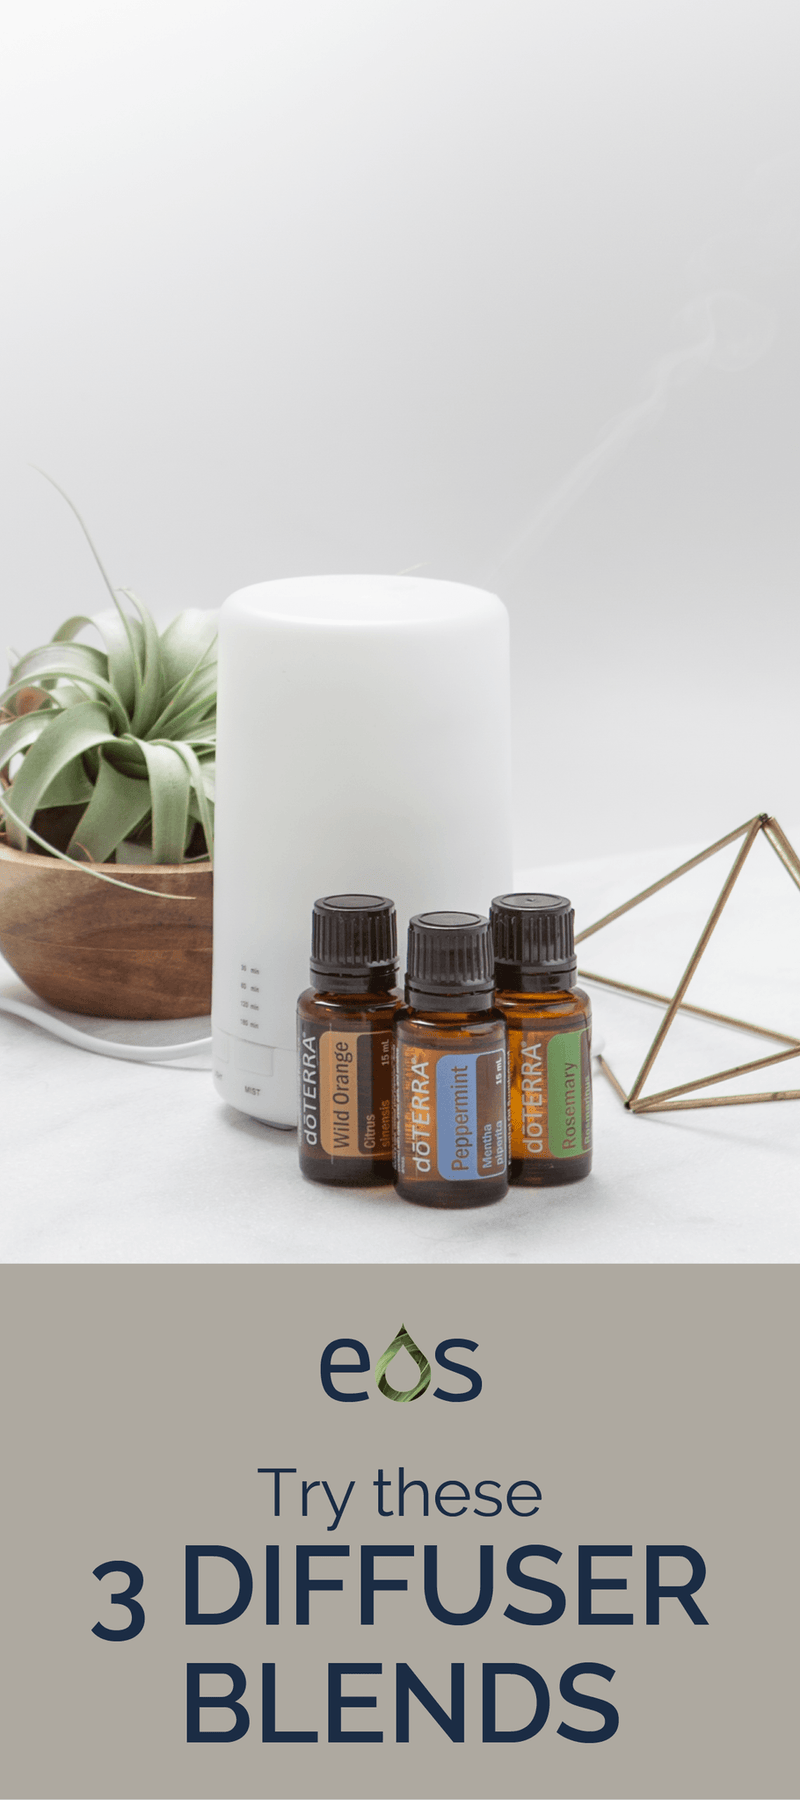 Try these 3 diffuser blends!